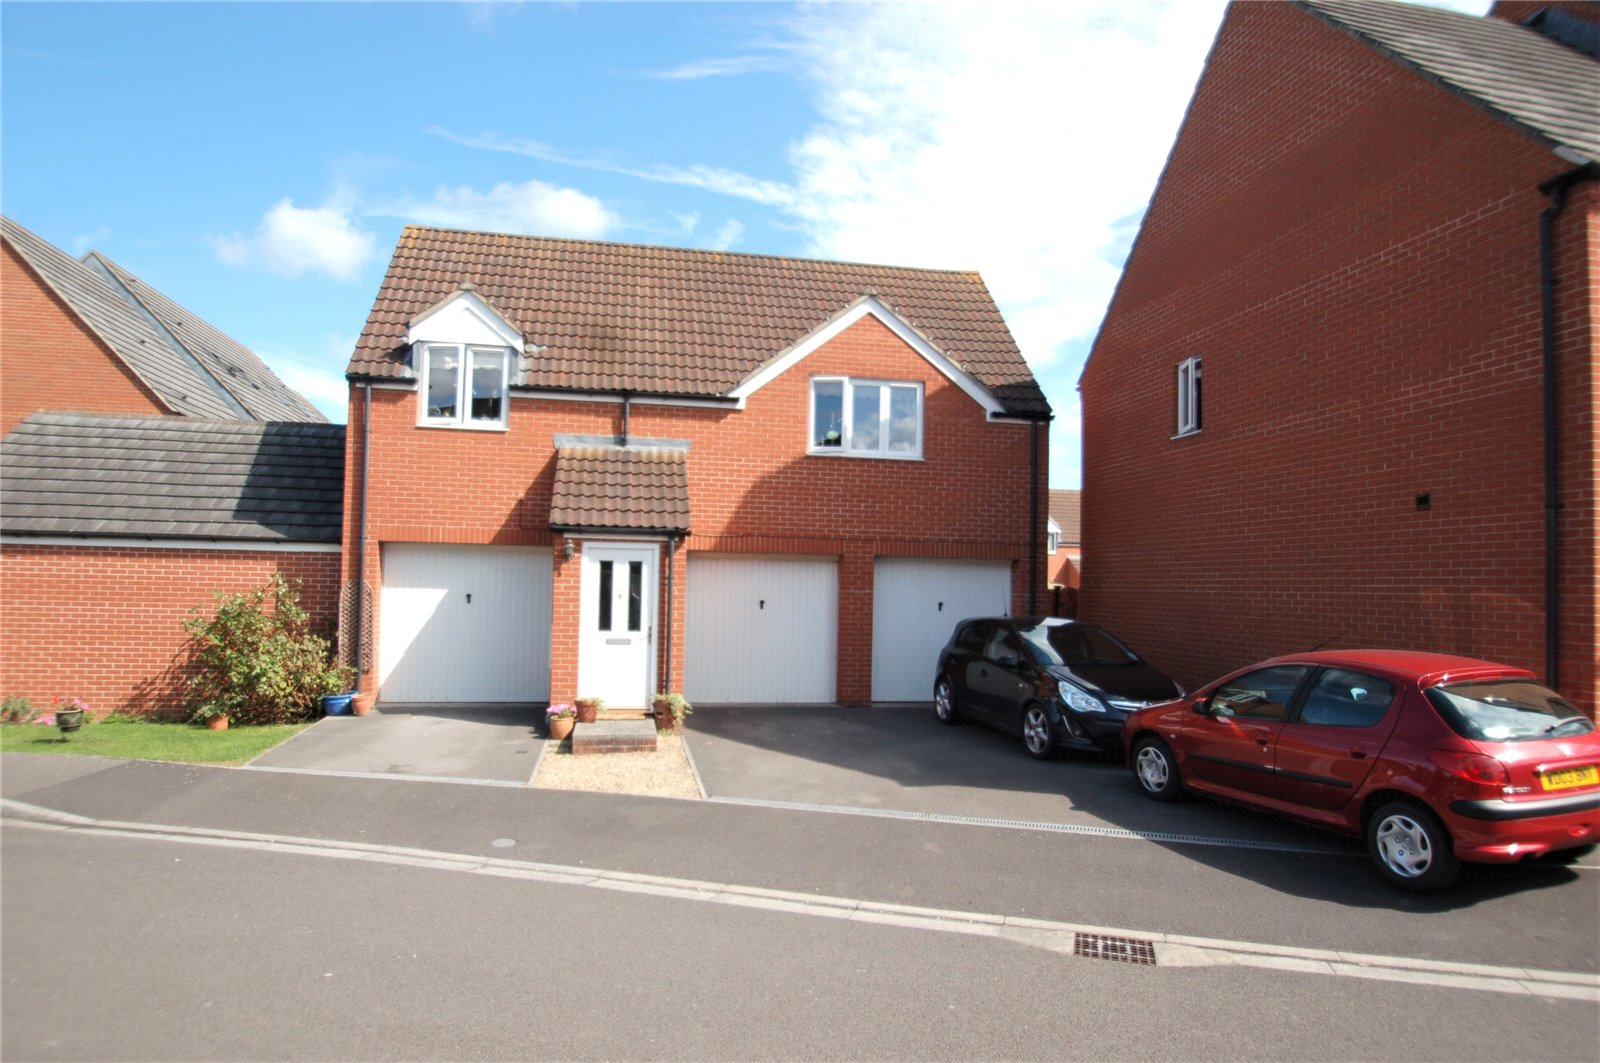 2 Bedrooms Flat for sale in Watermans Meadow Bridgwater Somerset TA6